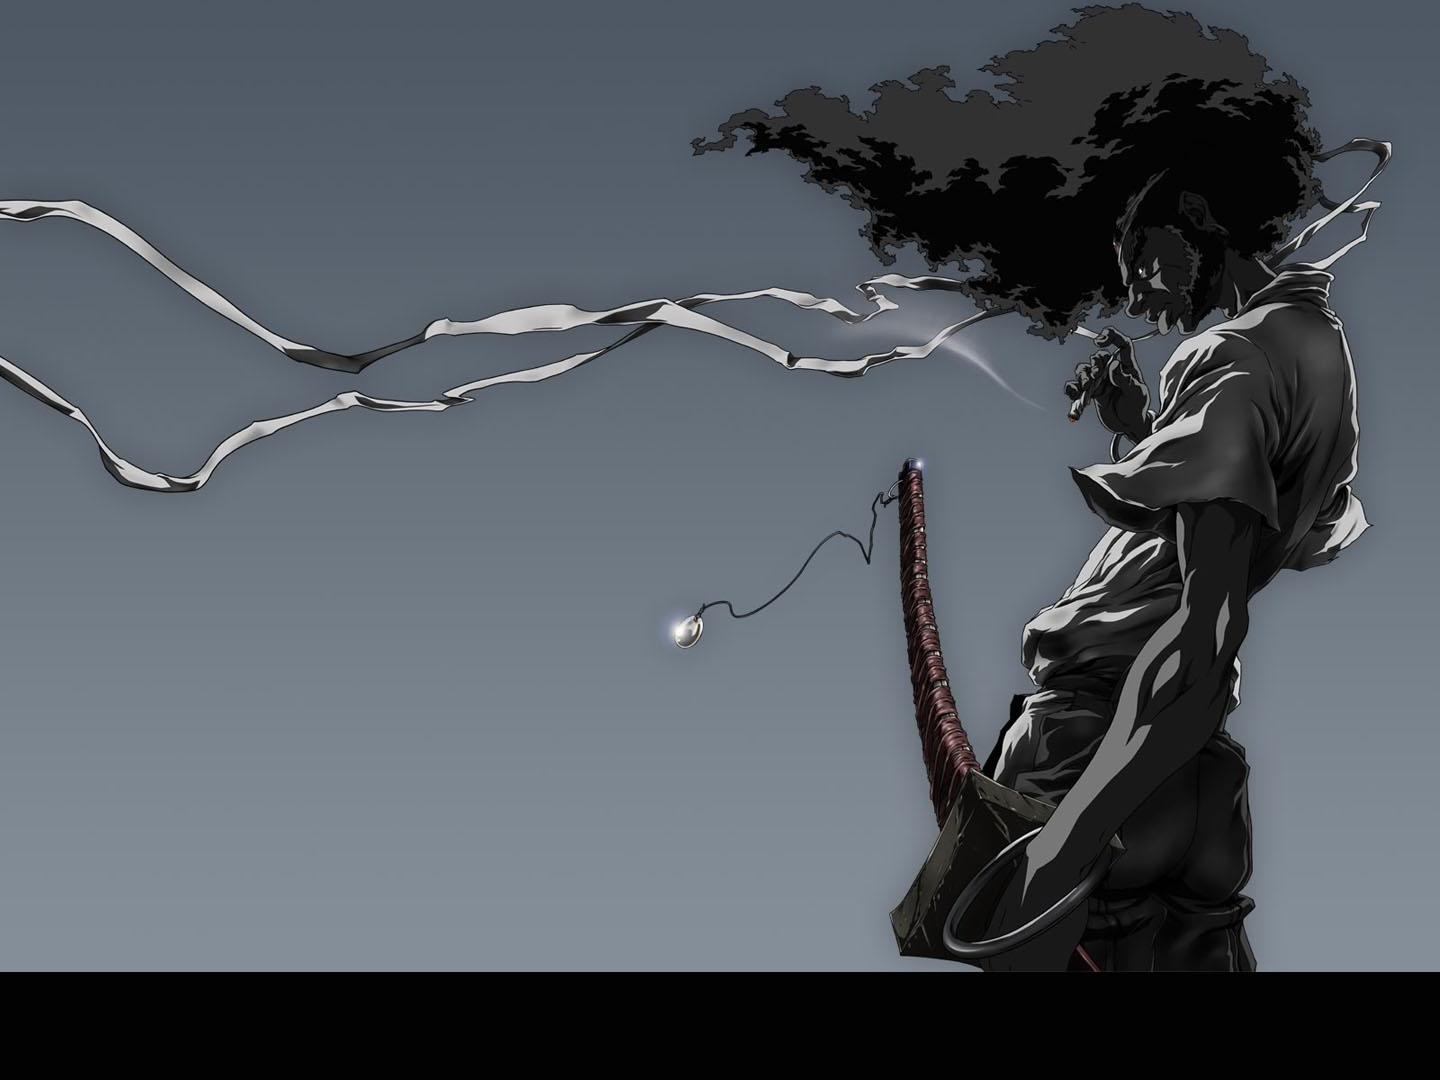 Previous Afro Samurai Wallpaper Blowing In The Wind